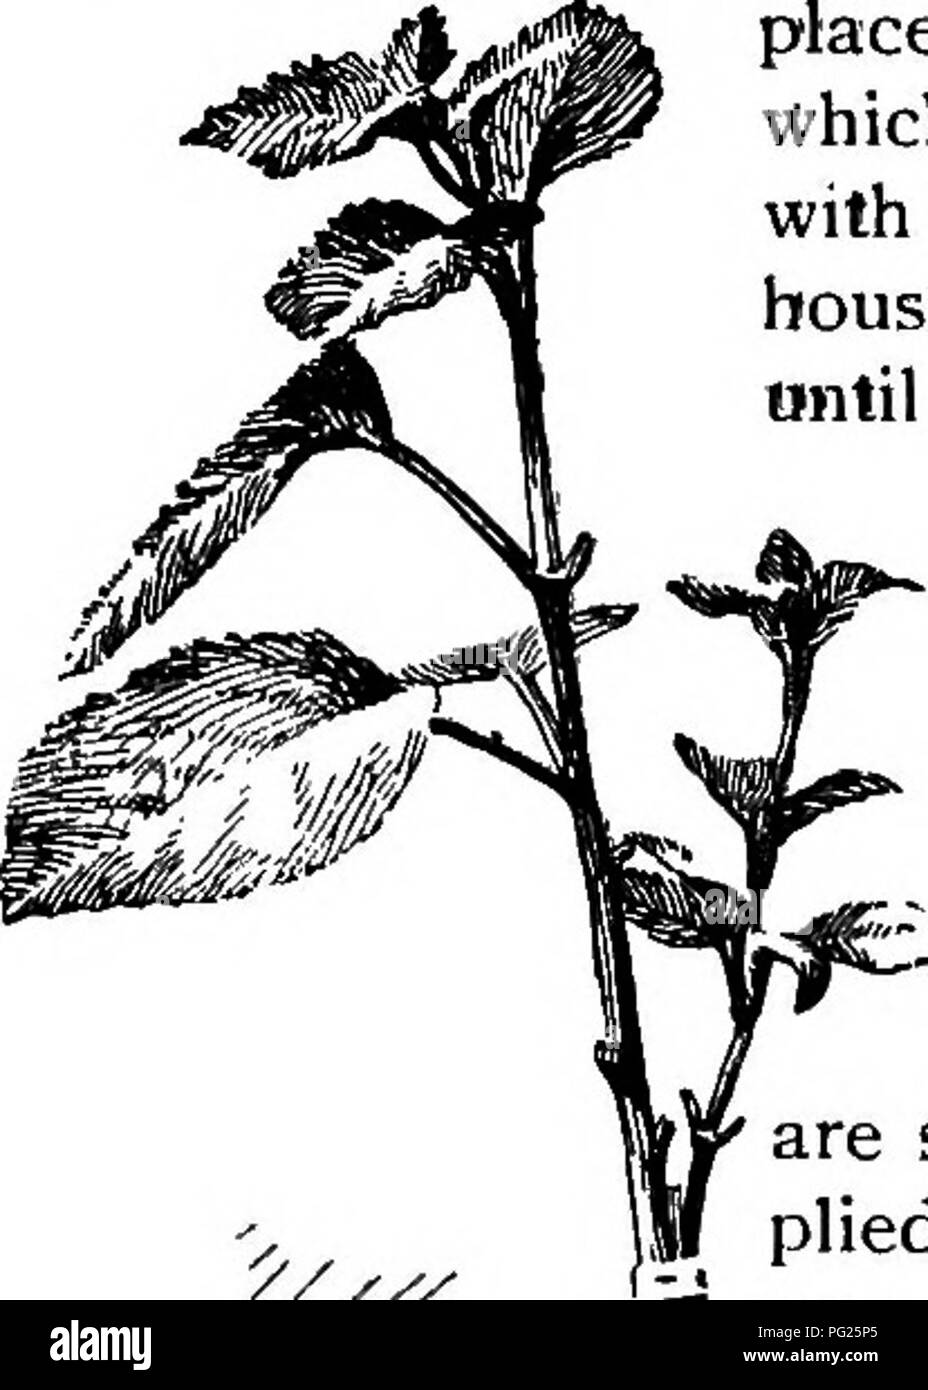 . The nursery-book; a complete guide to the multiplication of plants ... Gardening; Plant propagation. VENEER AND SIDE-GRAFTS. 115 and growing cions are used. All plants in fall sap must be placed under a frame in the house, in vfhich they can be almost entirely buried with sphagnum, not too wet, and the house must be kept cool and rather moist until the cions are well established. Some species can be transferred to the open border or to nursery rows in the spring, but most plants which are grafted in this way are handled in pots during the follow-' -.^ing season. Rhododendrons, Ja^ panese map - Stock Image